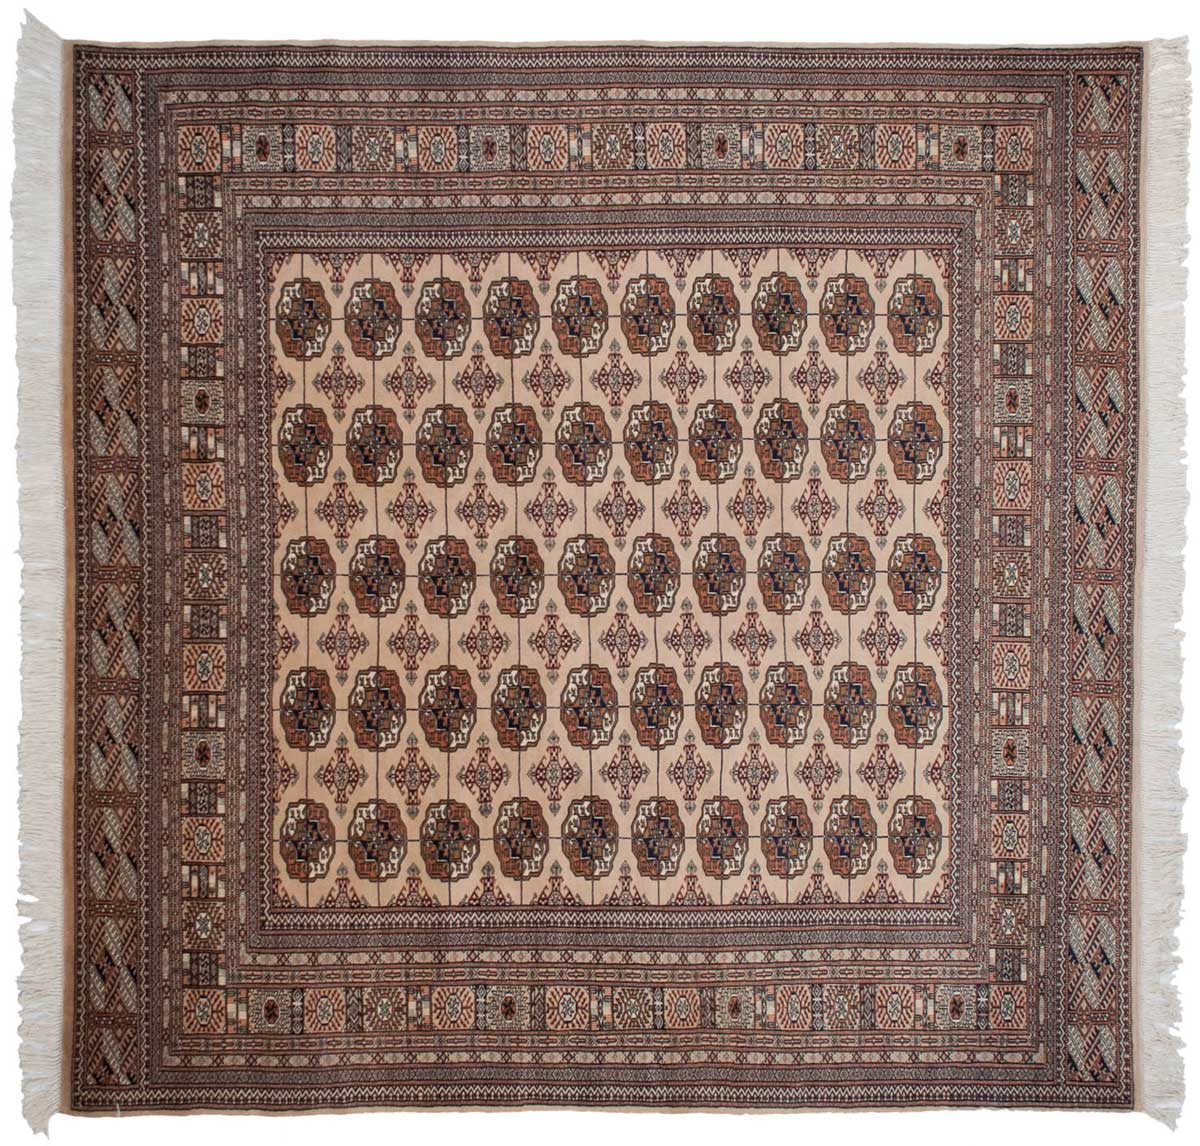 8 8 Bokhara Beige Oriental Square Rug 021797 Carpets By Dilmaghani